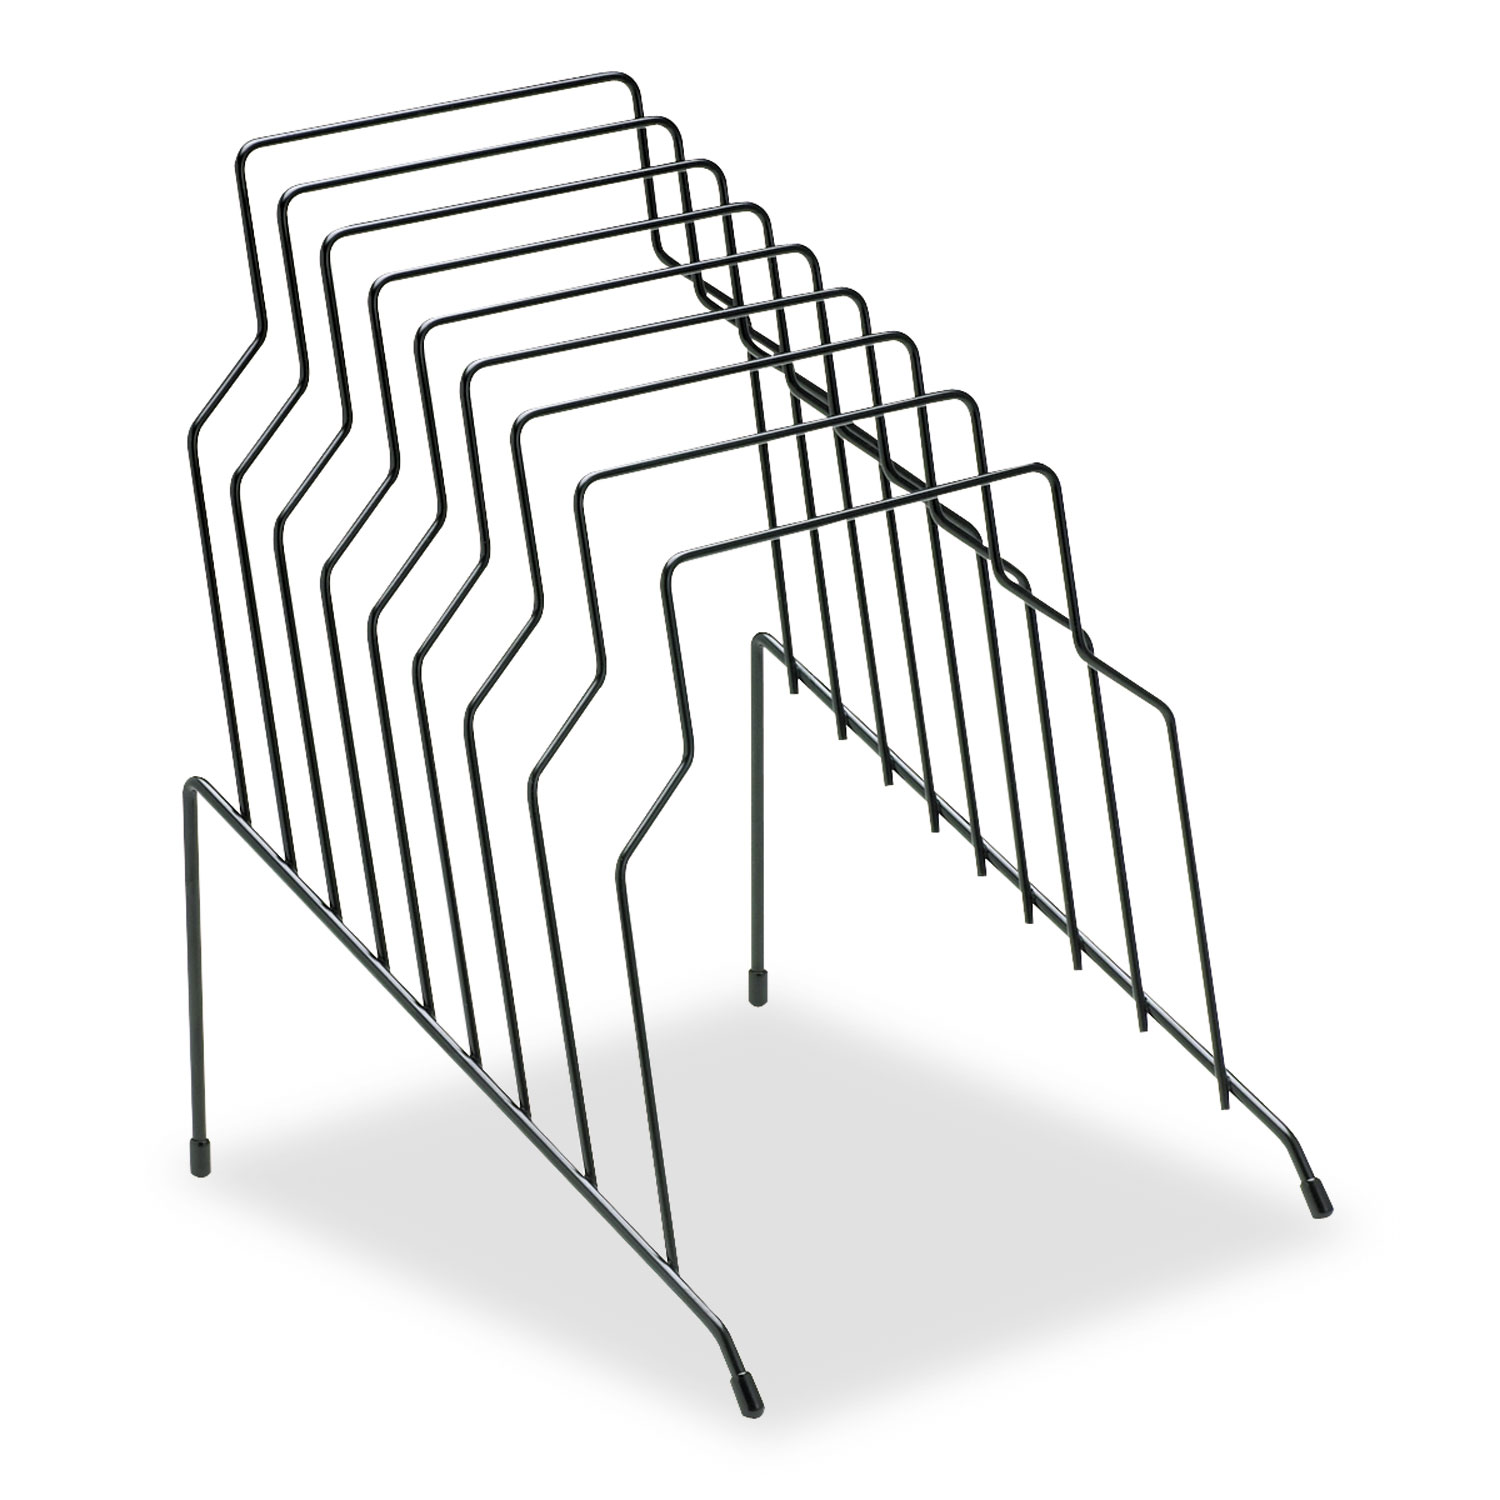 Wire Step File 8 Comp Steel 10 1 8 X 12 1 8 X 11 3 16